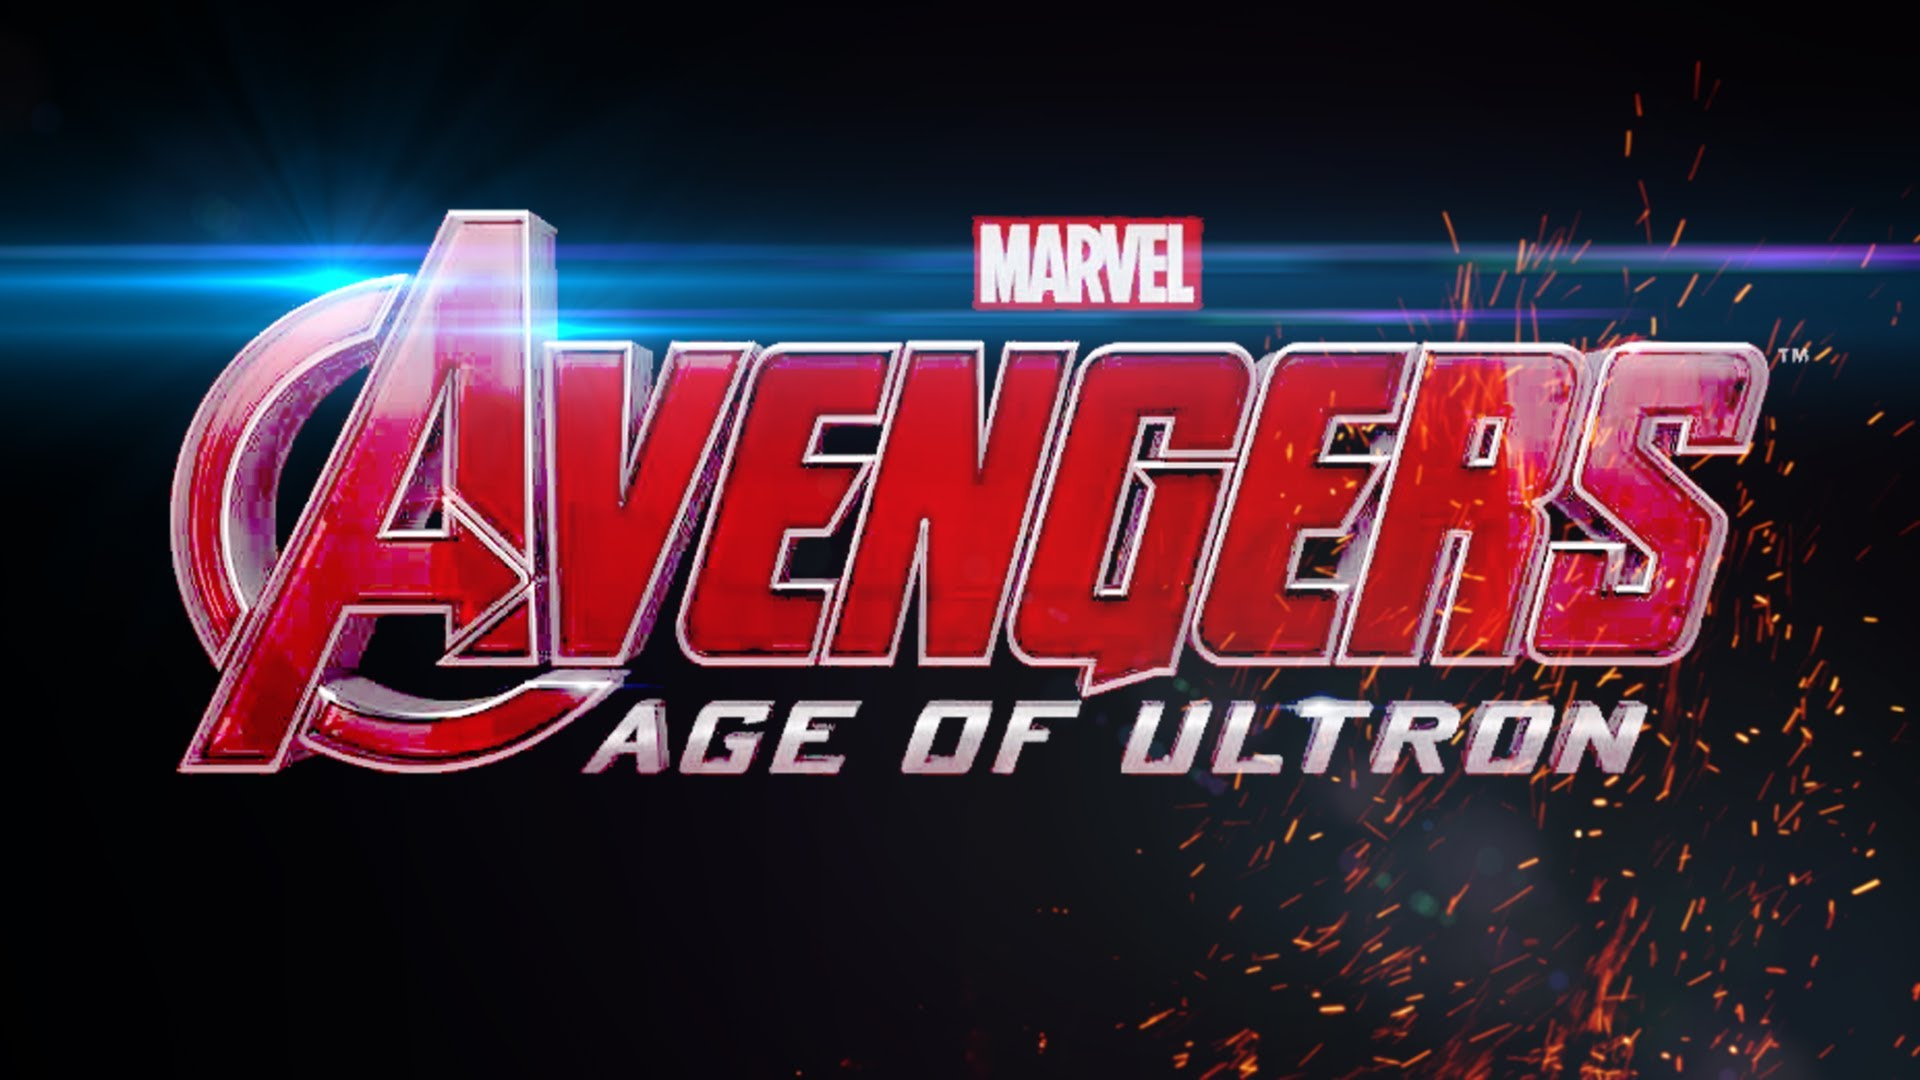 ageofultronlogo The Avengers: Age of Ultron Concept Art: Quicksilver, Scarlet Witch, Hulk, Iron Man and More